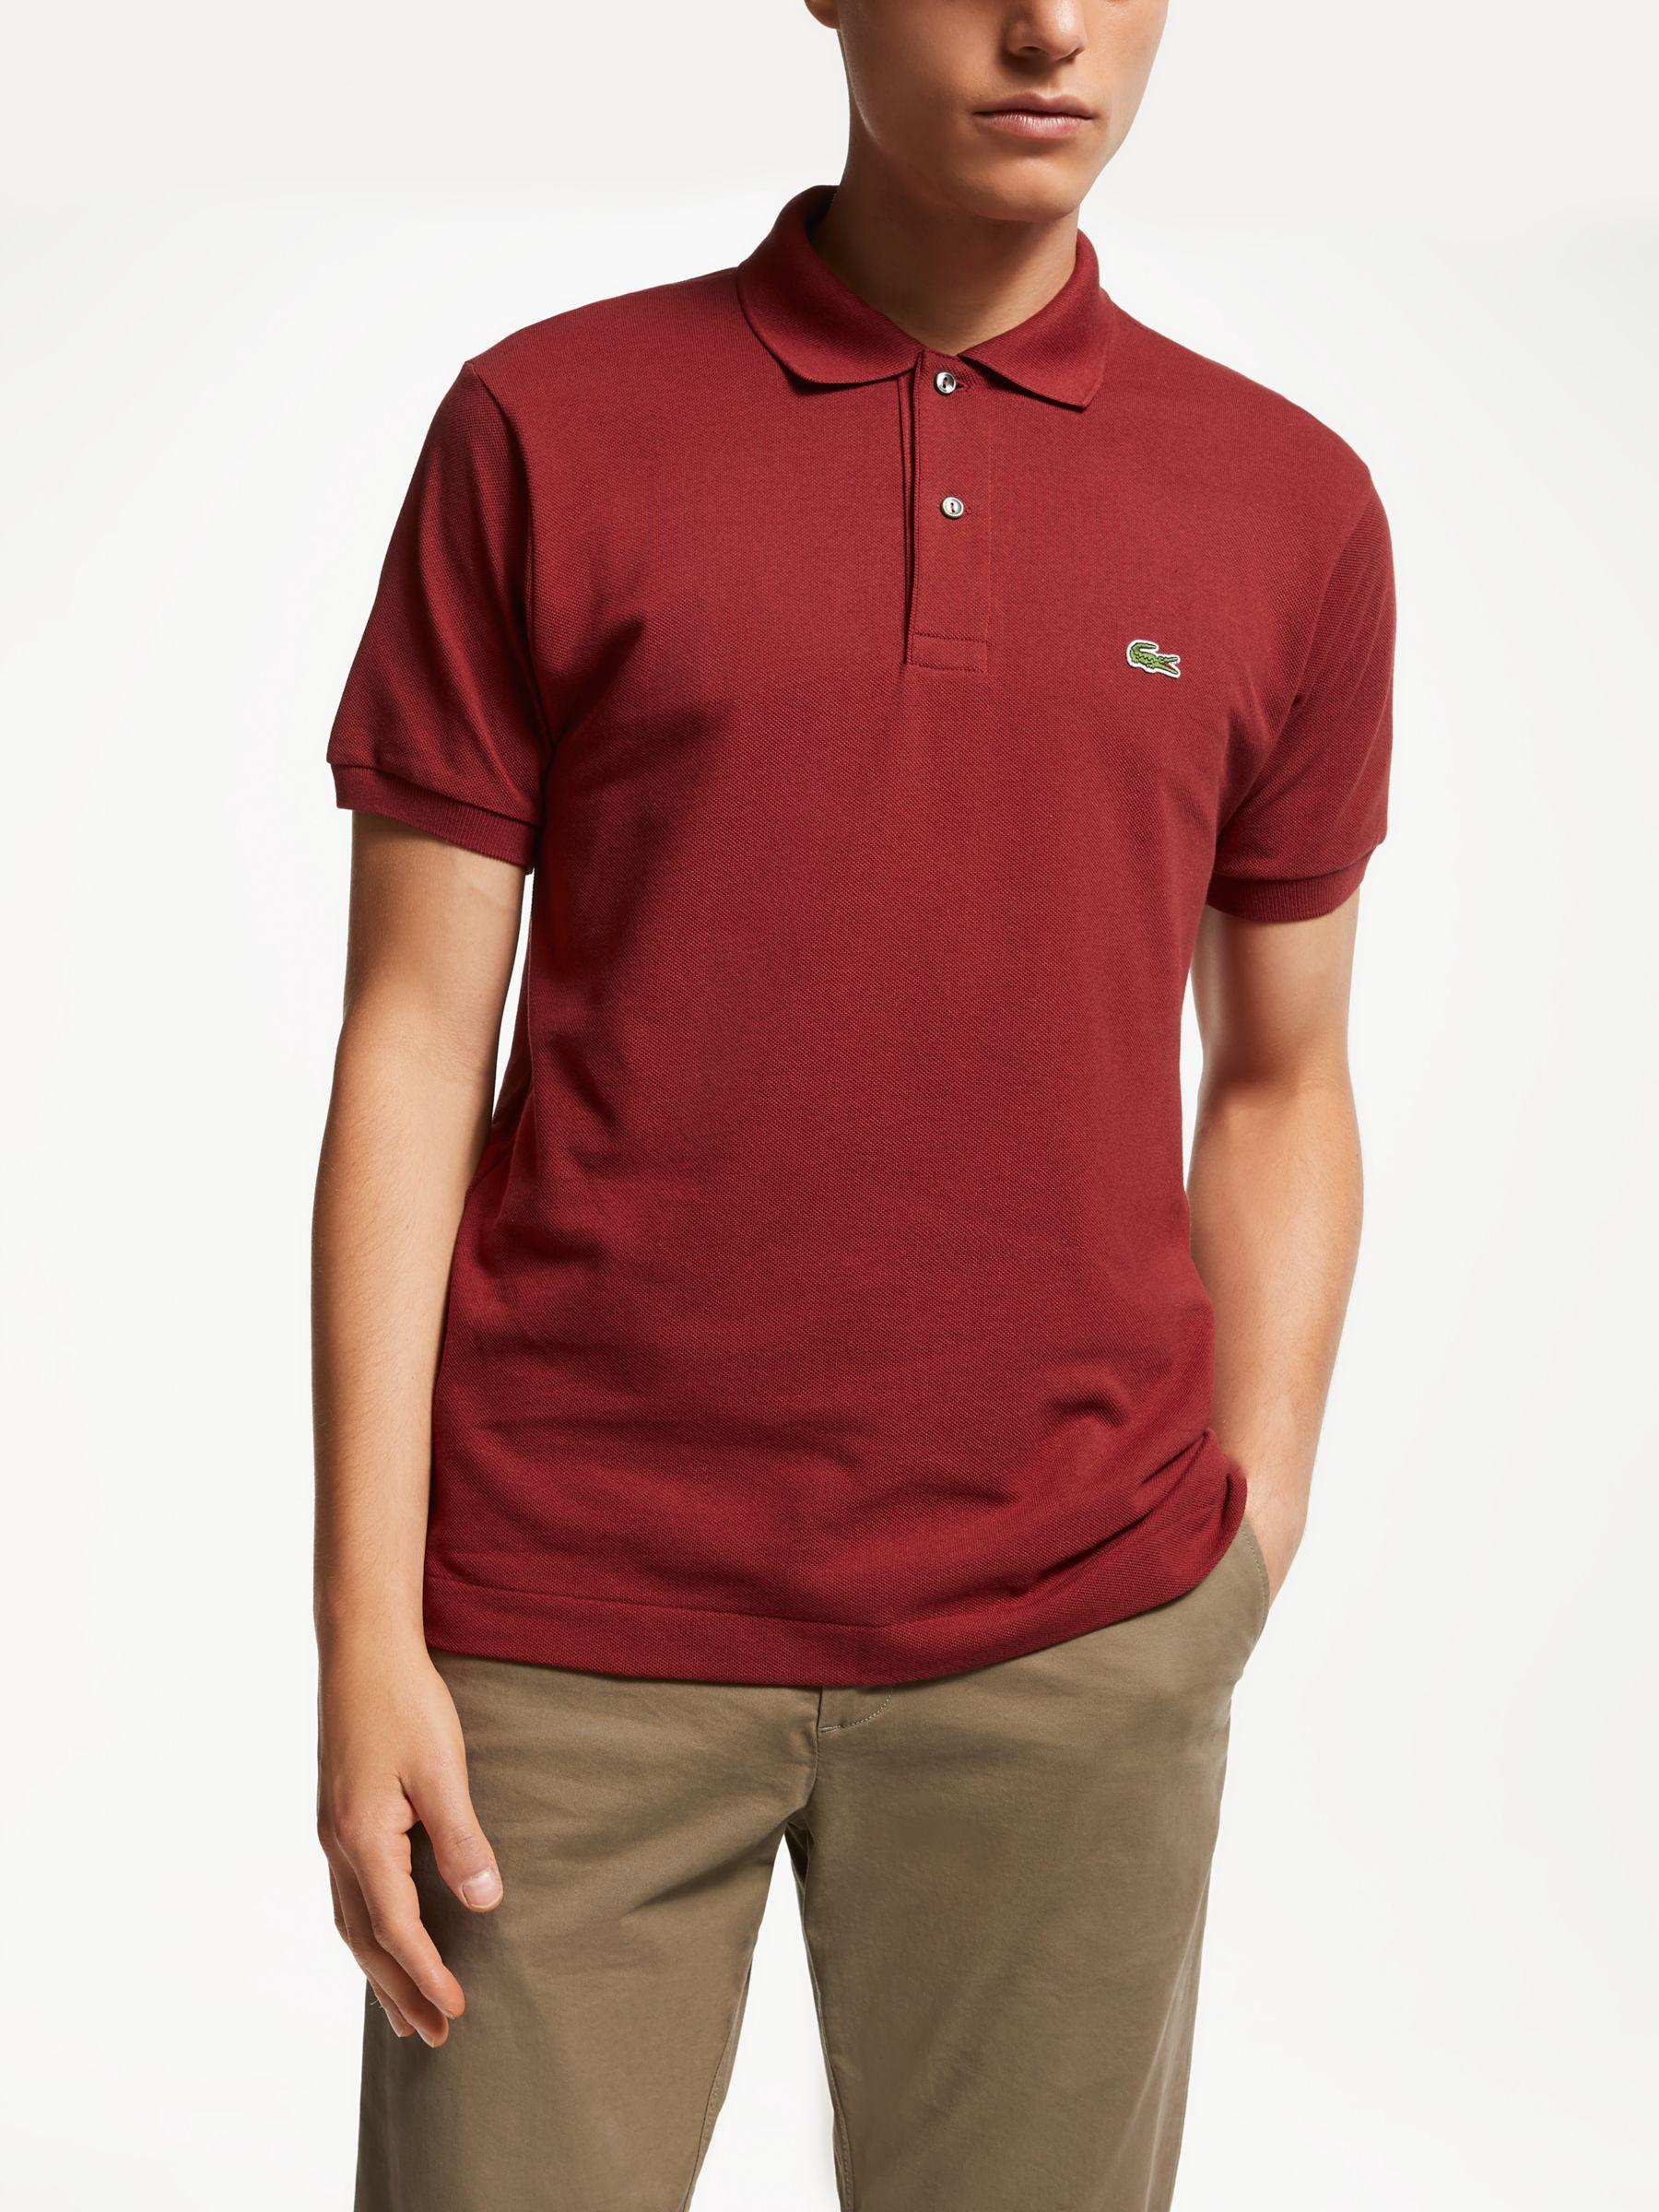 c0a85fb3 Lacoste L.12.12 Classic Regular Fit Short Sleeve Polo Shirt in Red ...